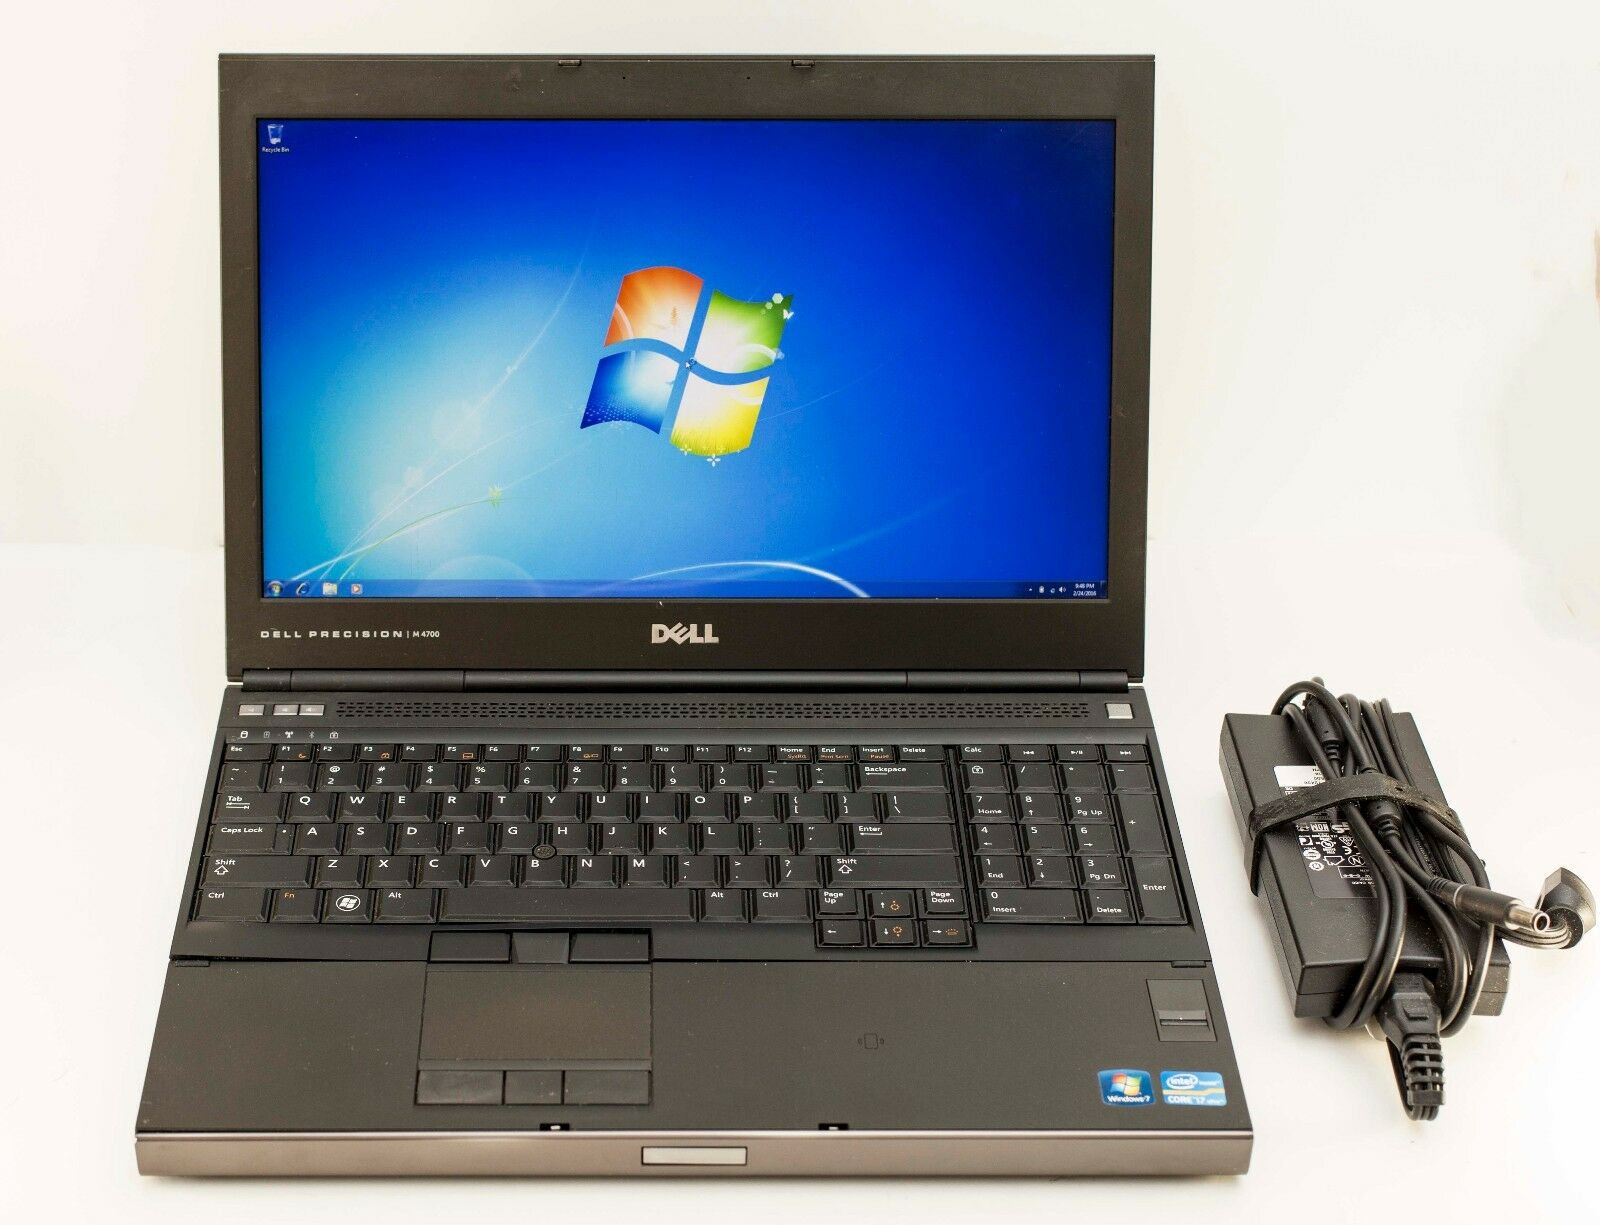 Dell Precision M4700 Core i7-3740QM 2.7GHz 32GB 256GB SSD Win7 NVd Gaming Laptop